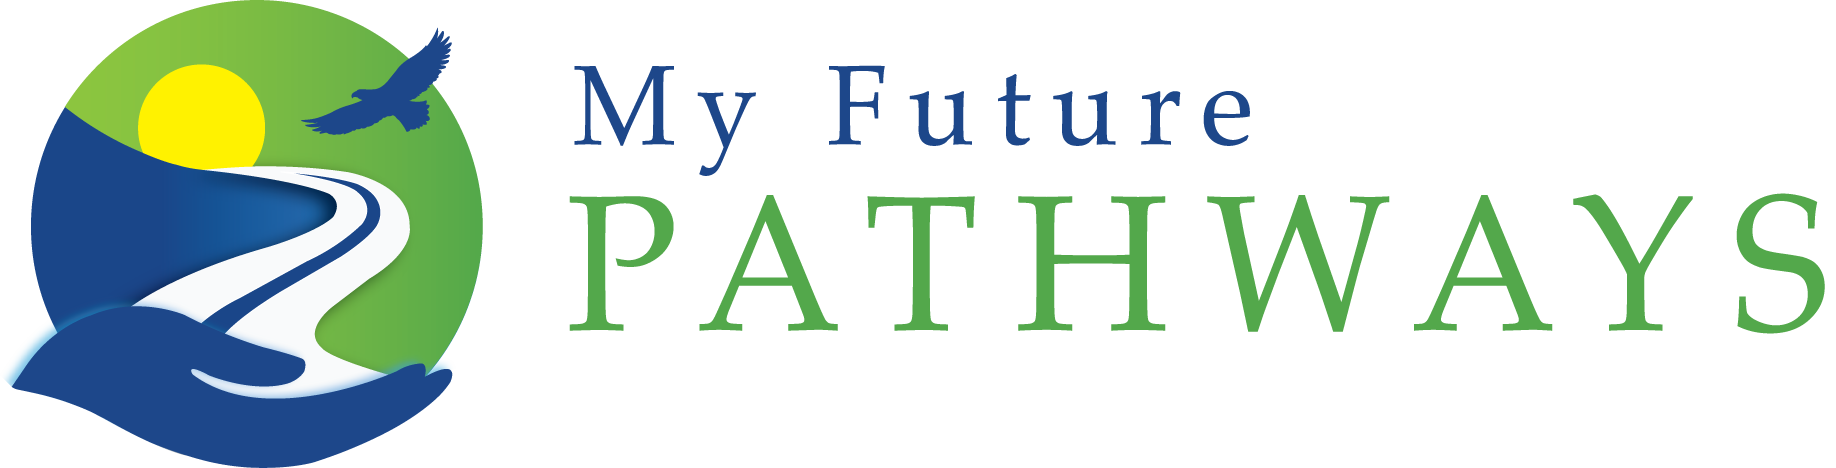 FINAL-LOGO-PATHWAYS-PNG-01